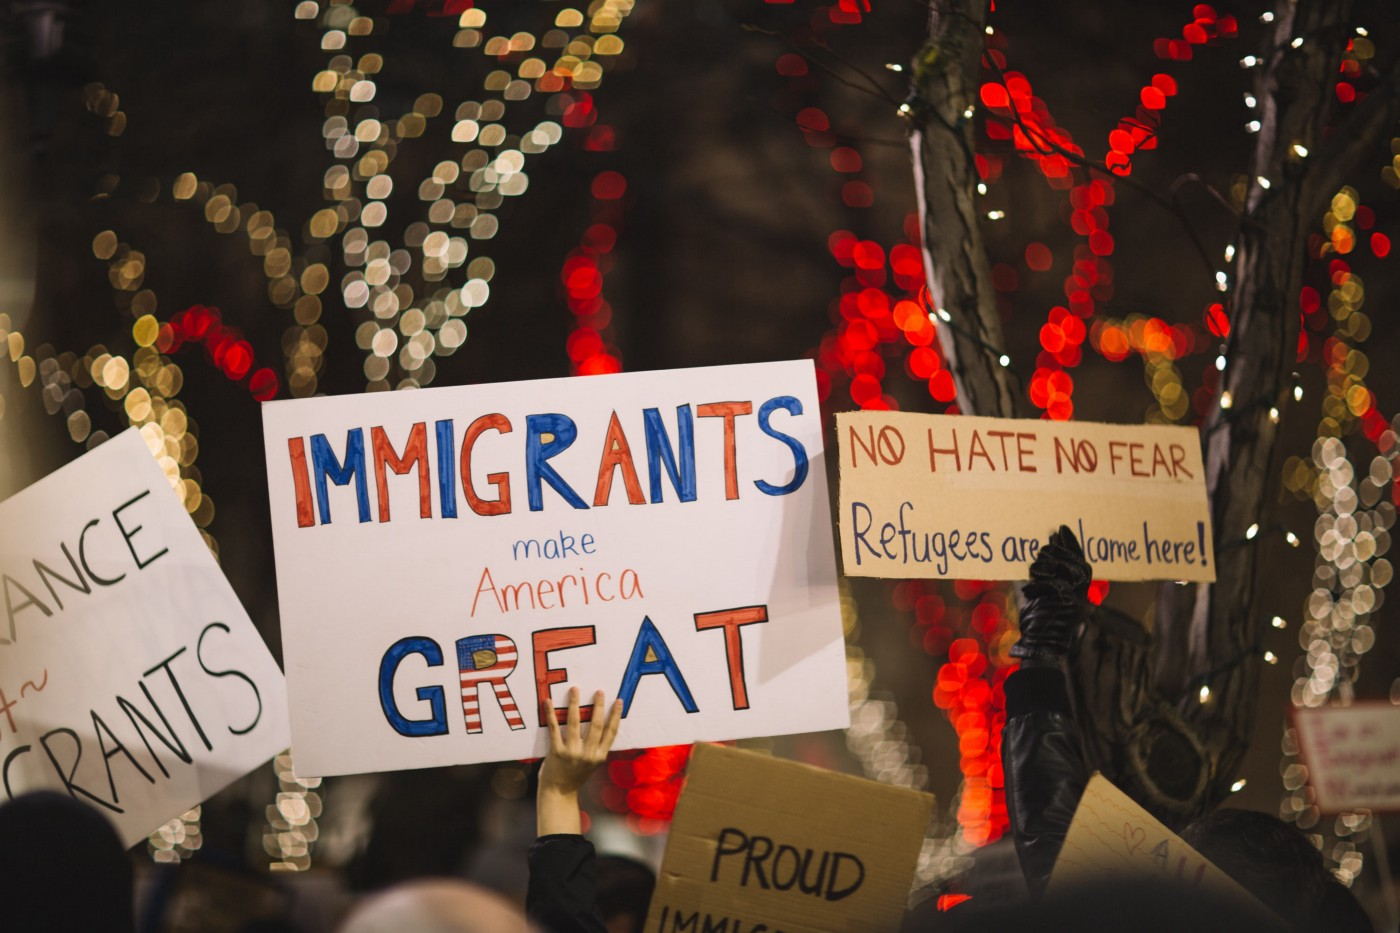 Immigrant make America great poster